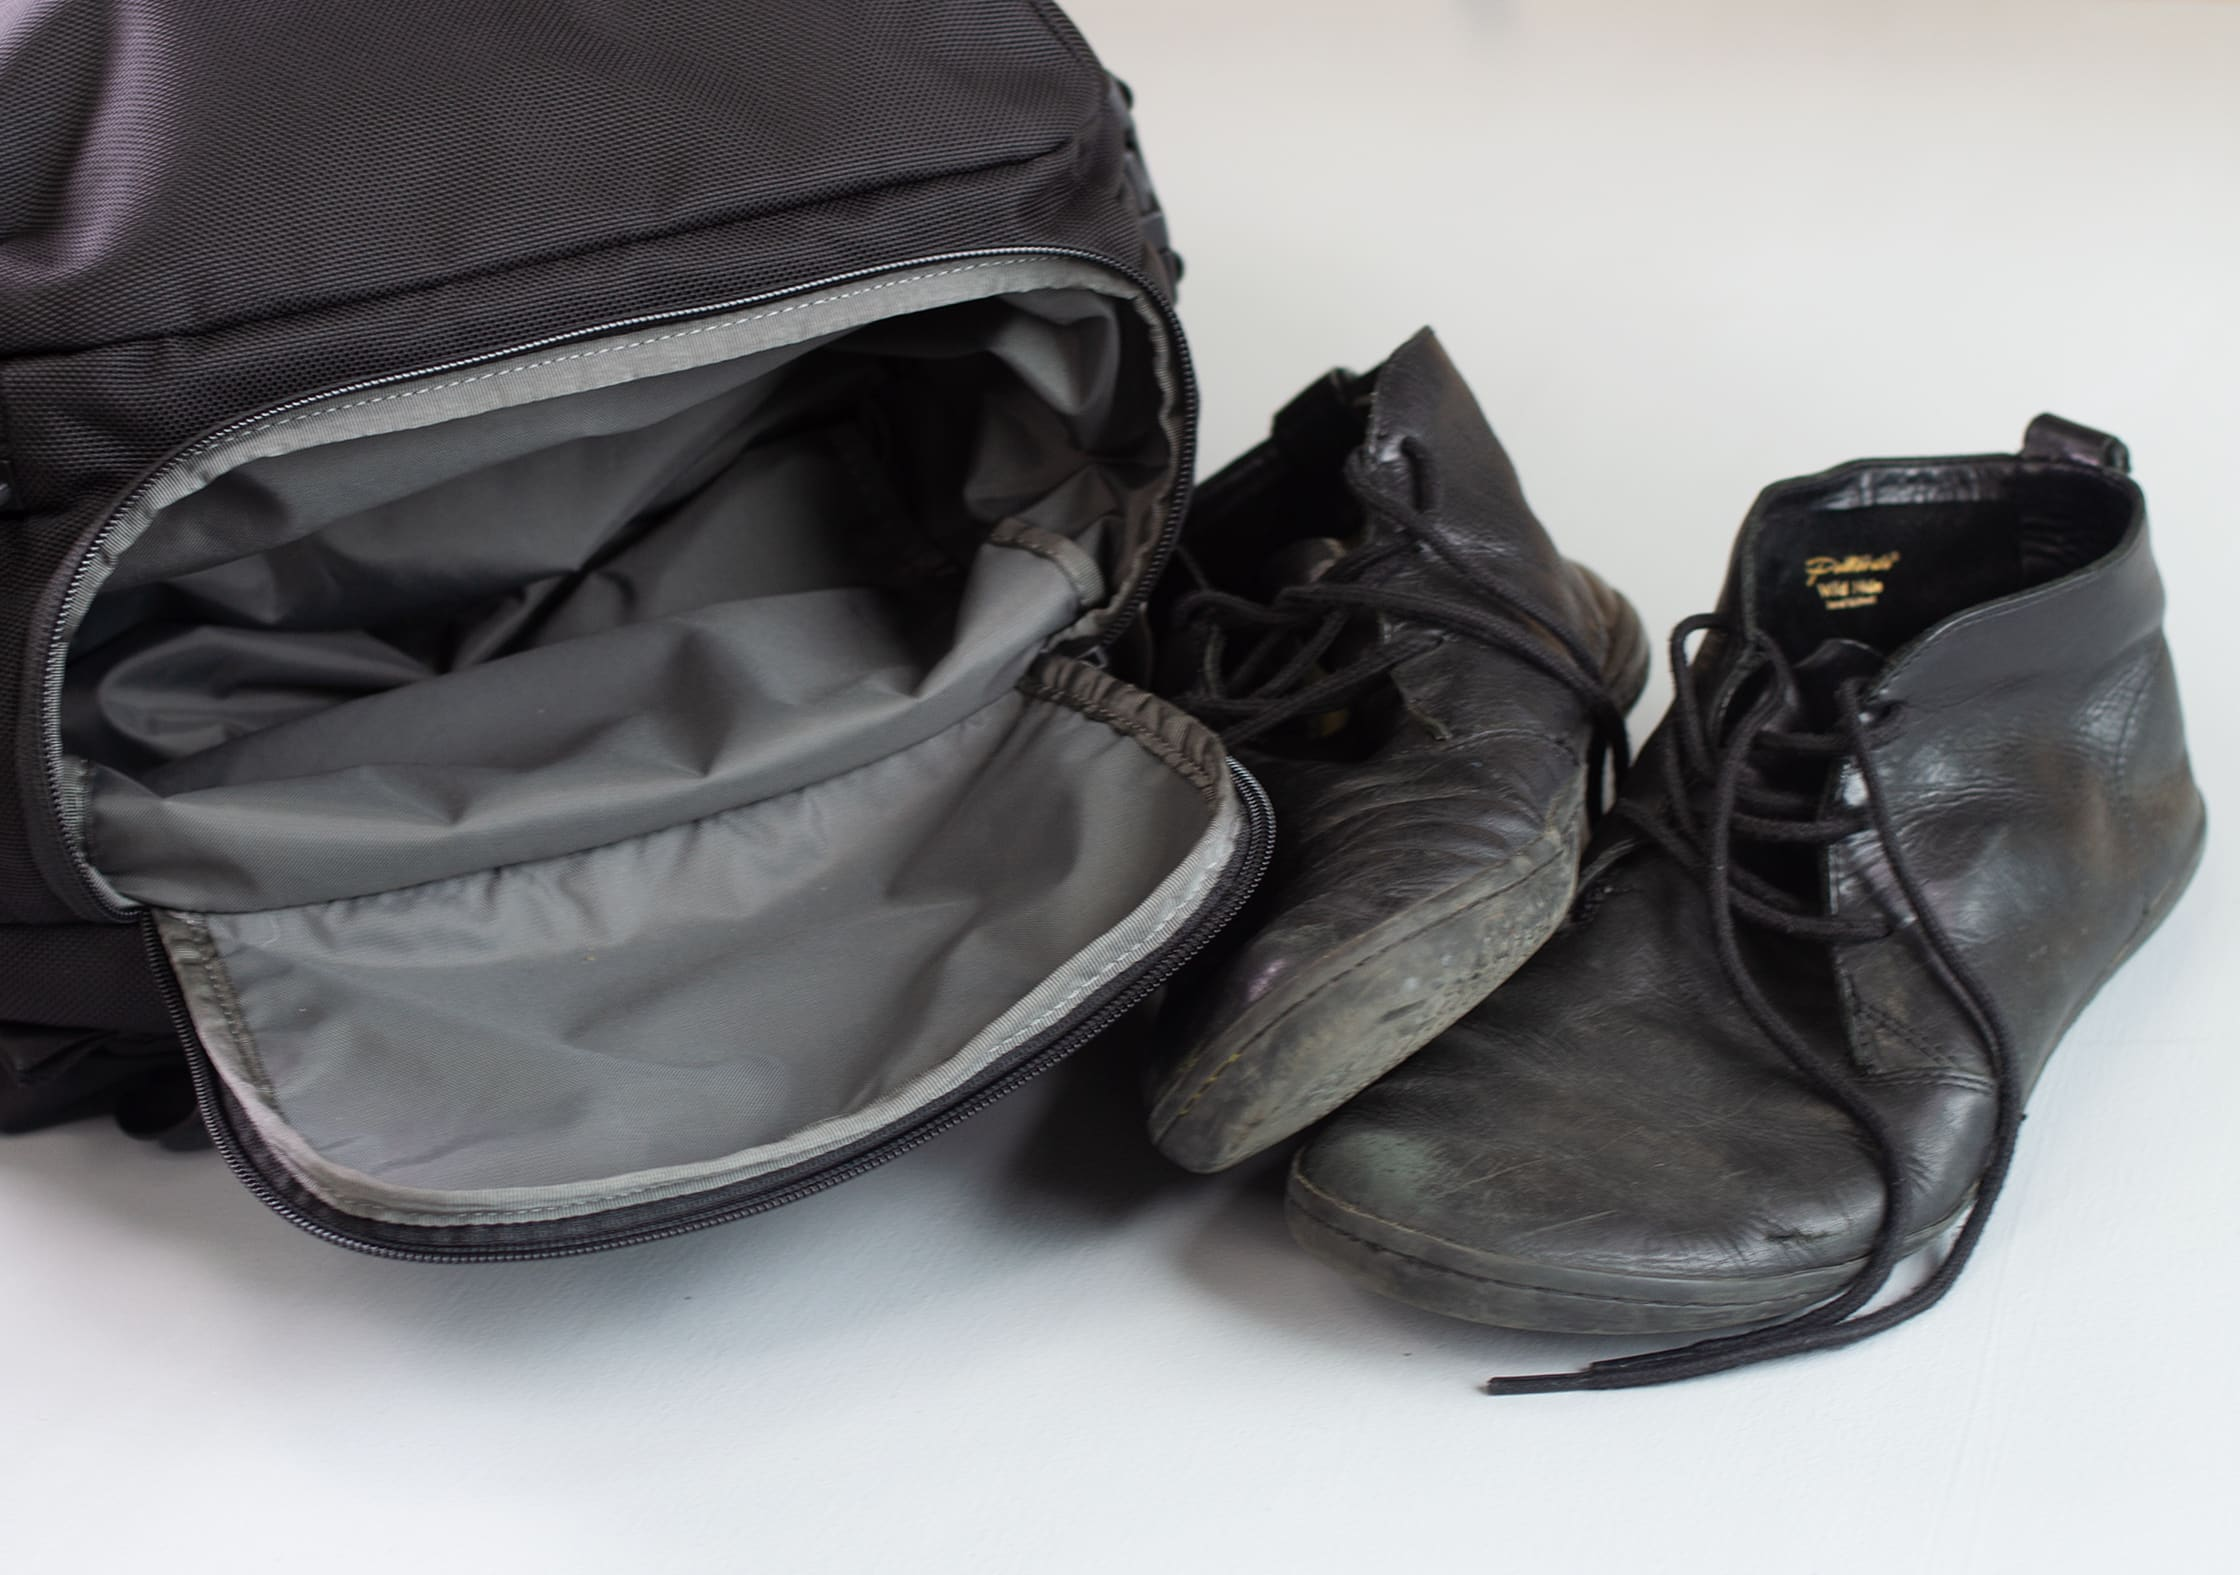 Aer Travel Pack 2 Shoe Compartment